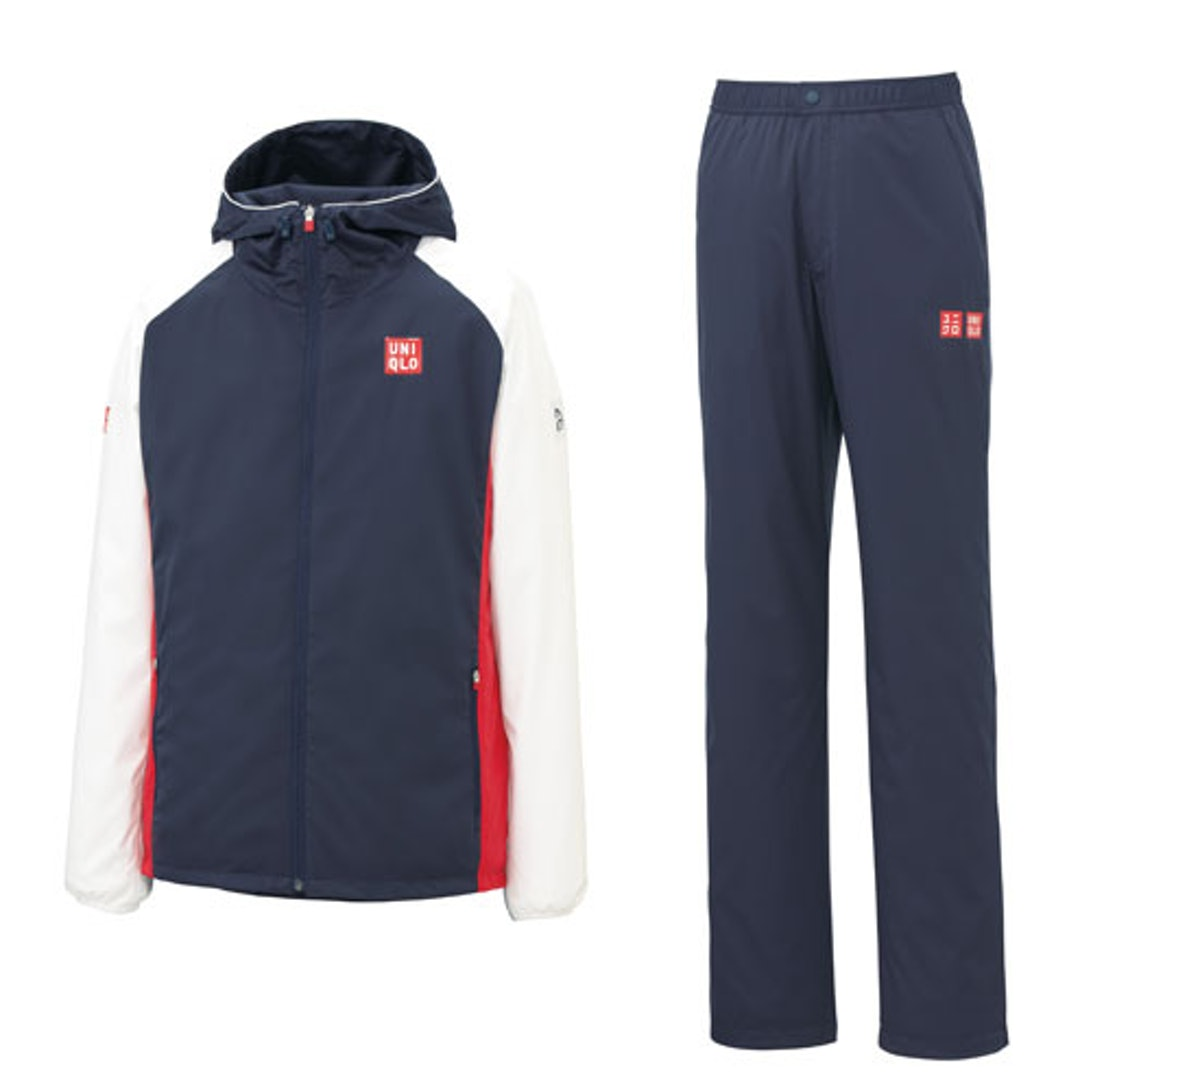 blog-uniqlo-navy-warm-up-outfit.jpg